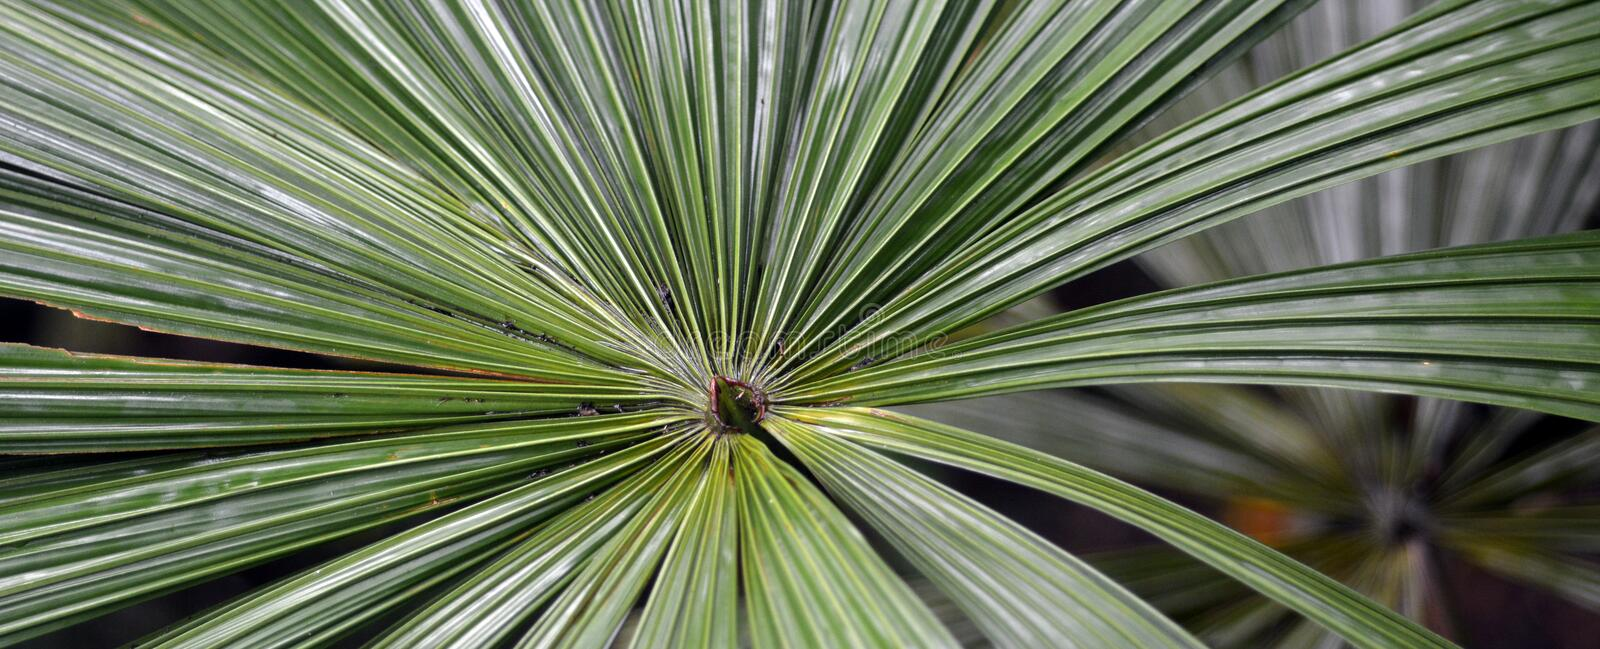 Australian fan palm Queensland Australia royalty free stock photos